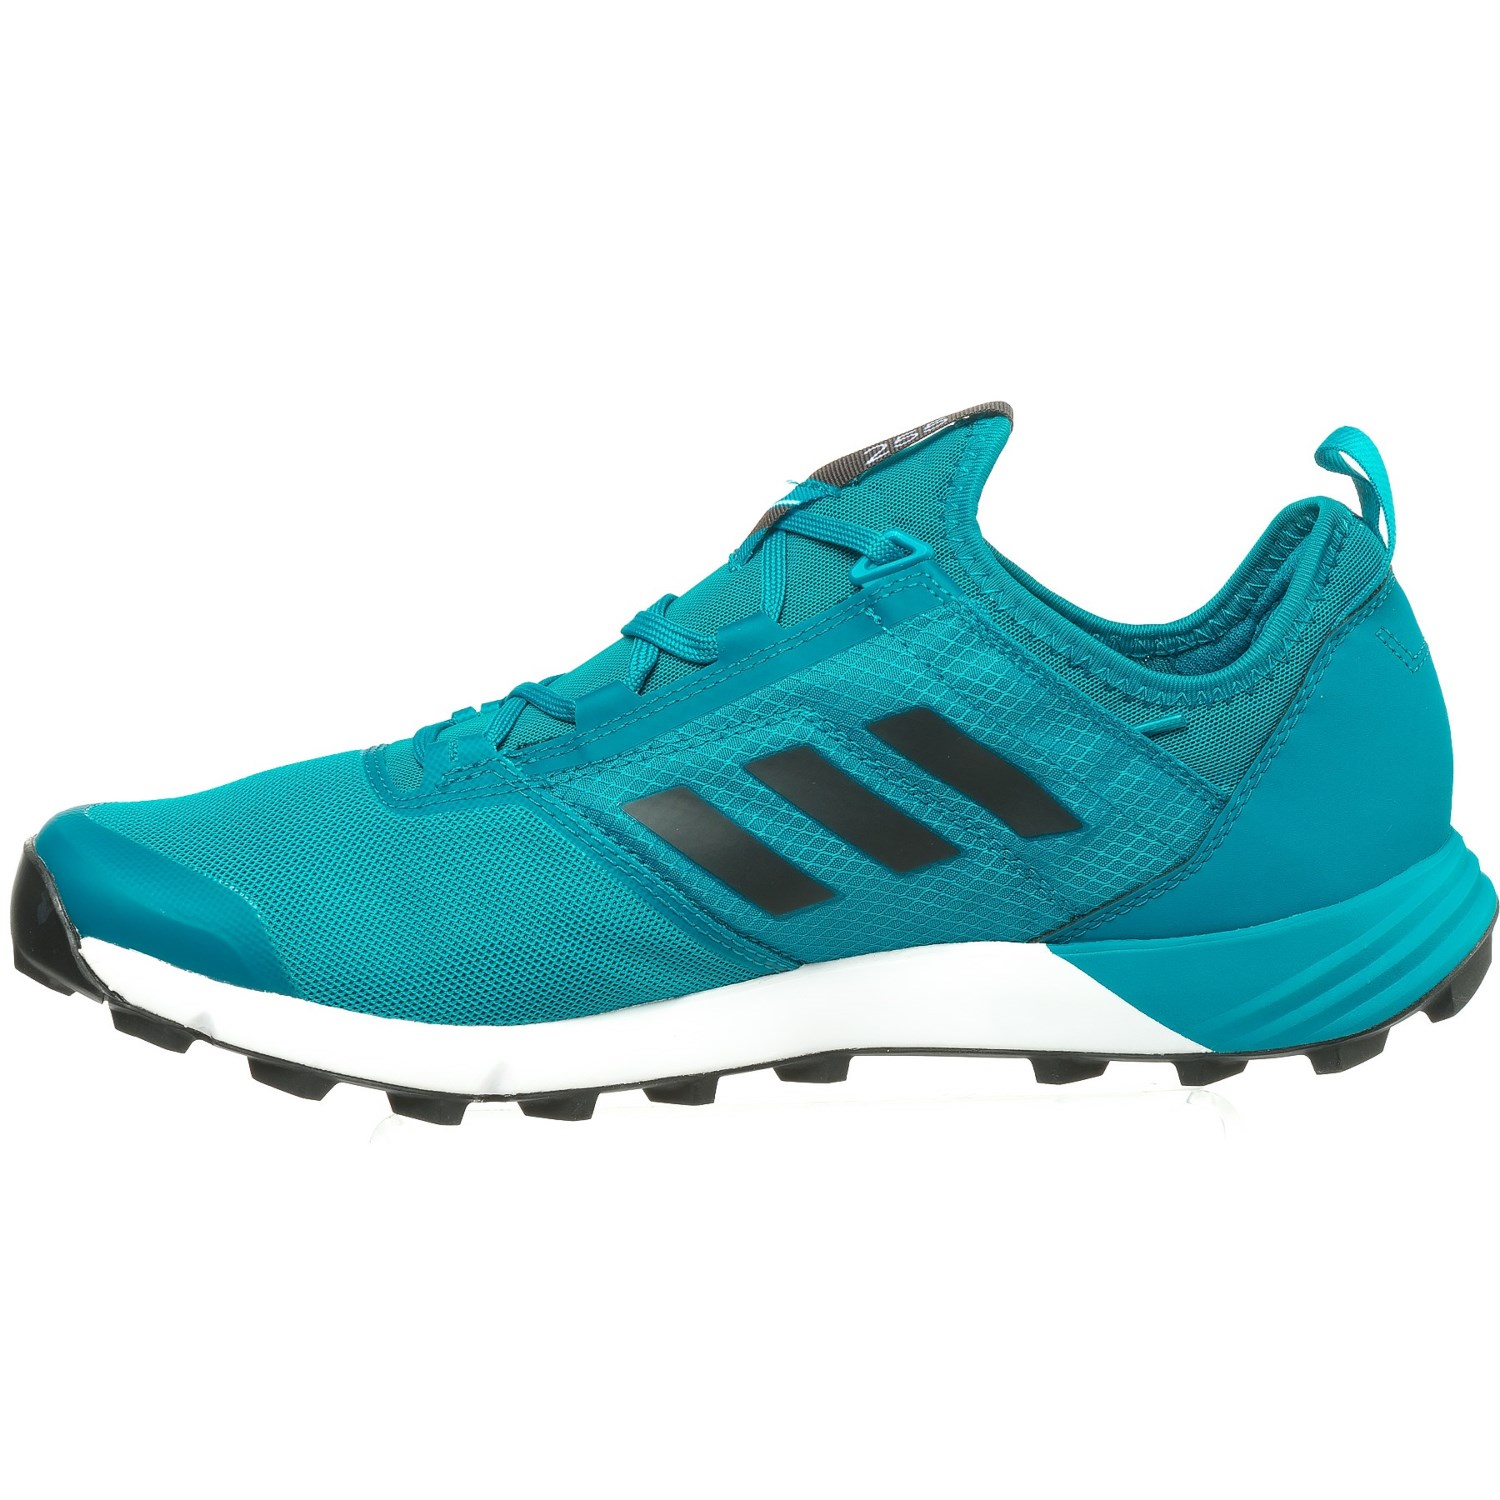 adidas Terrex Agravic Speed Trail Running Shoes (For Men) - Save 75% d3b74fb11d6f